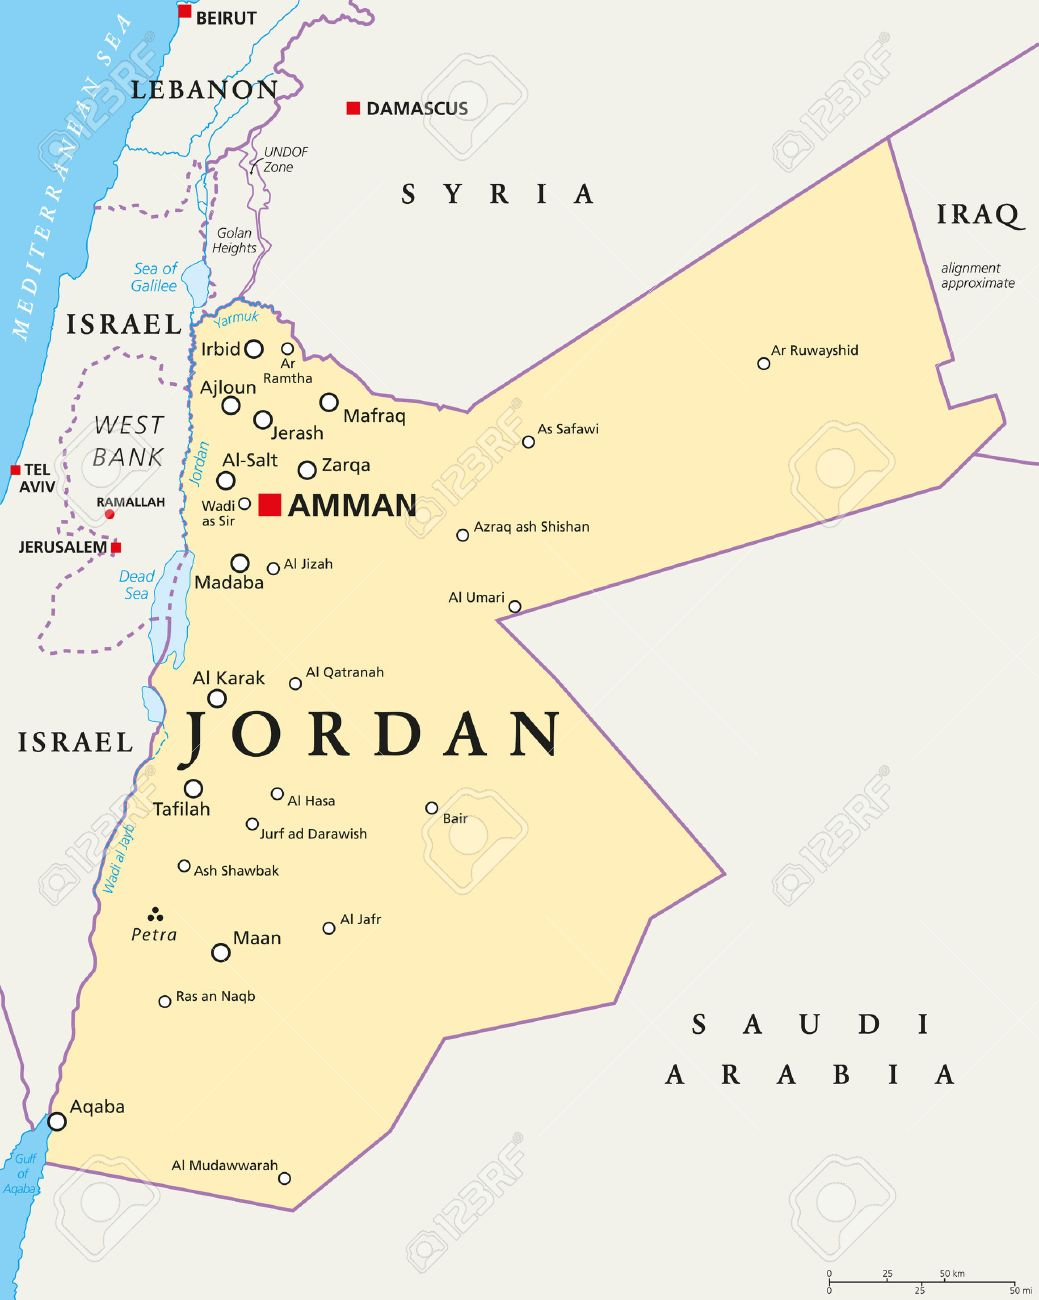 Political Map Of Jordan.Jordan Political Map With Capital Amman National Borders Important